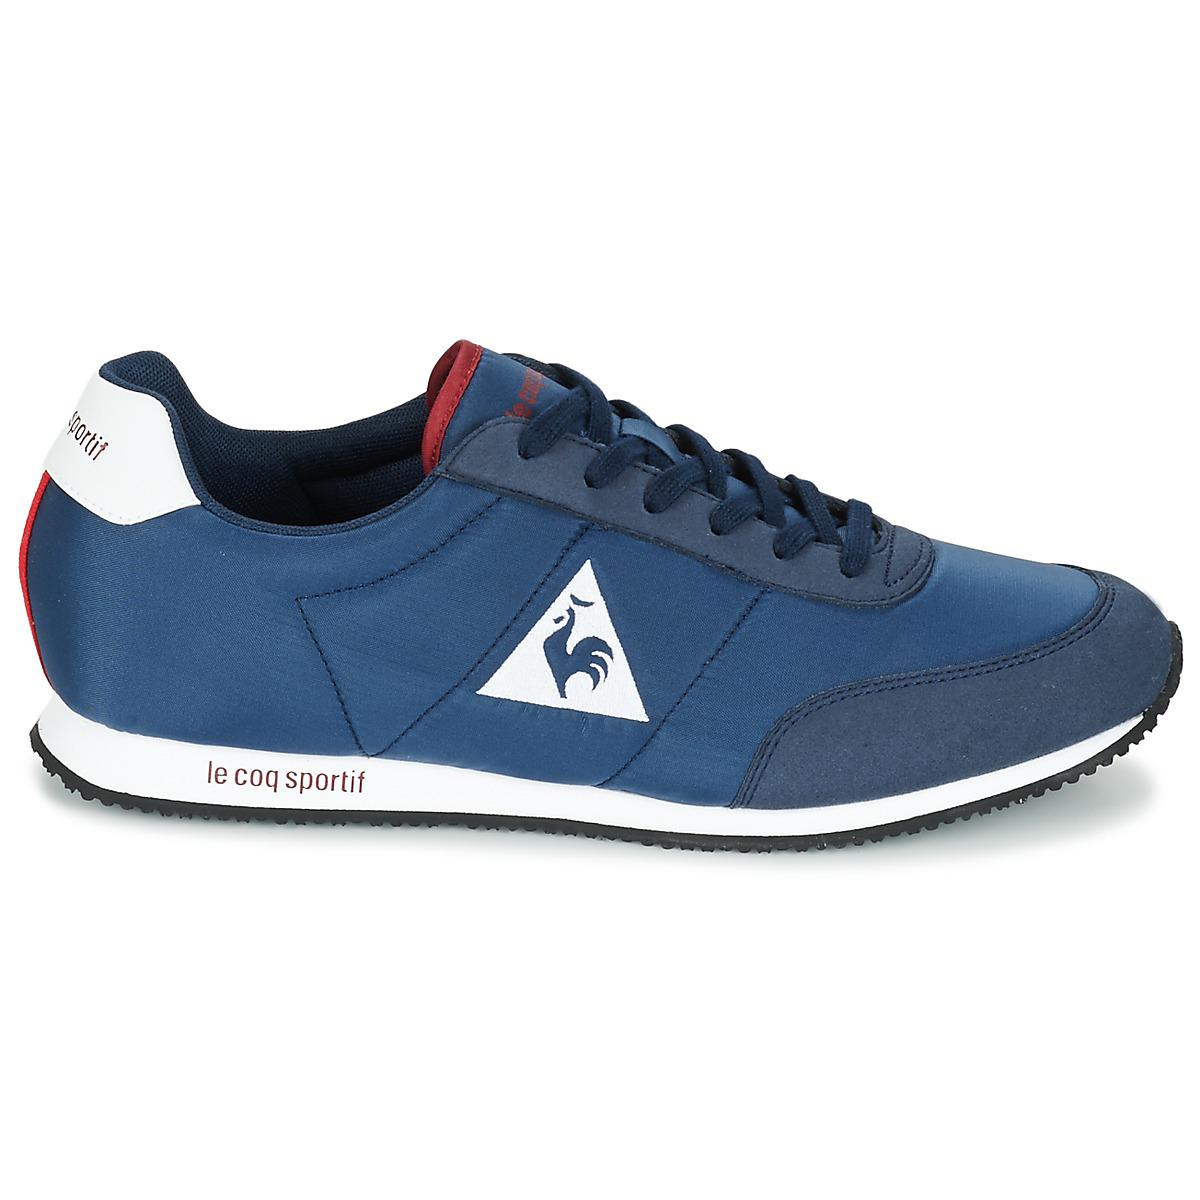 d7847caf3ce1 Le Coq Sportif Racerone Nylon Women s Shoes (trainers) In Blue in ...